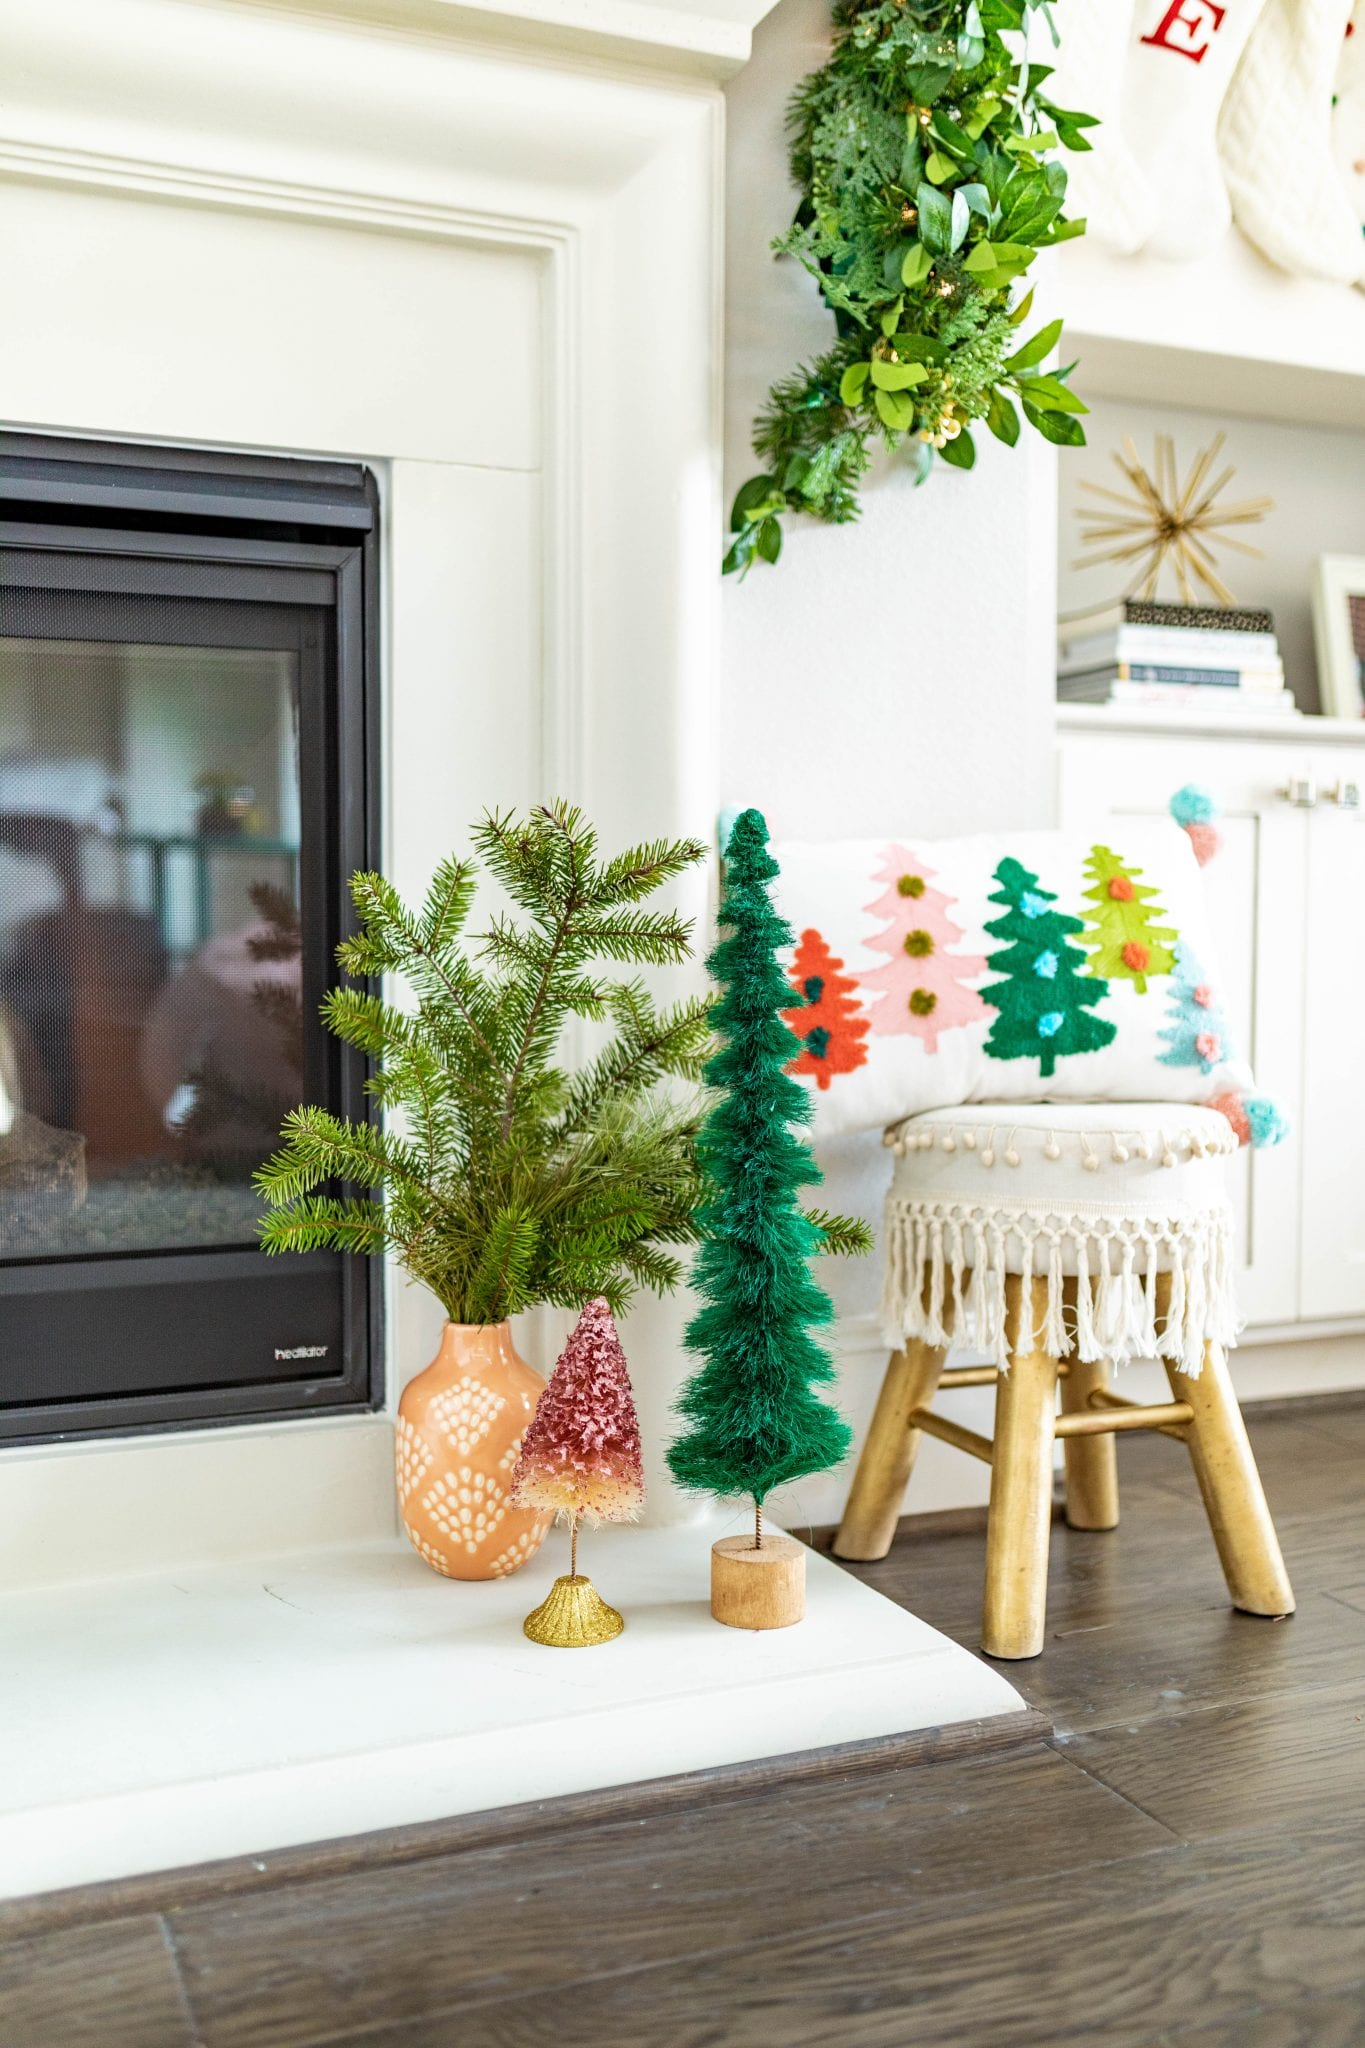 These are adorable and she's too funny! christmas decor | holiday decor DIY | diy holiday sign | merry & bright decor | merry & bright decor | Never Skip Brunch by Cara Newhart | #CHRISTMAS #diy #holiday #neverskipbrunch